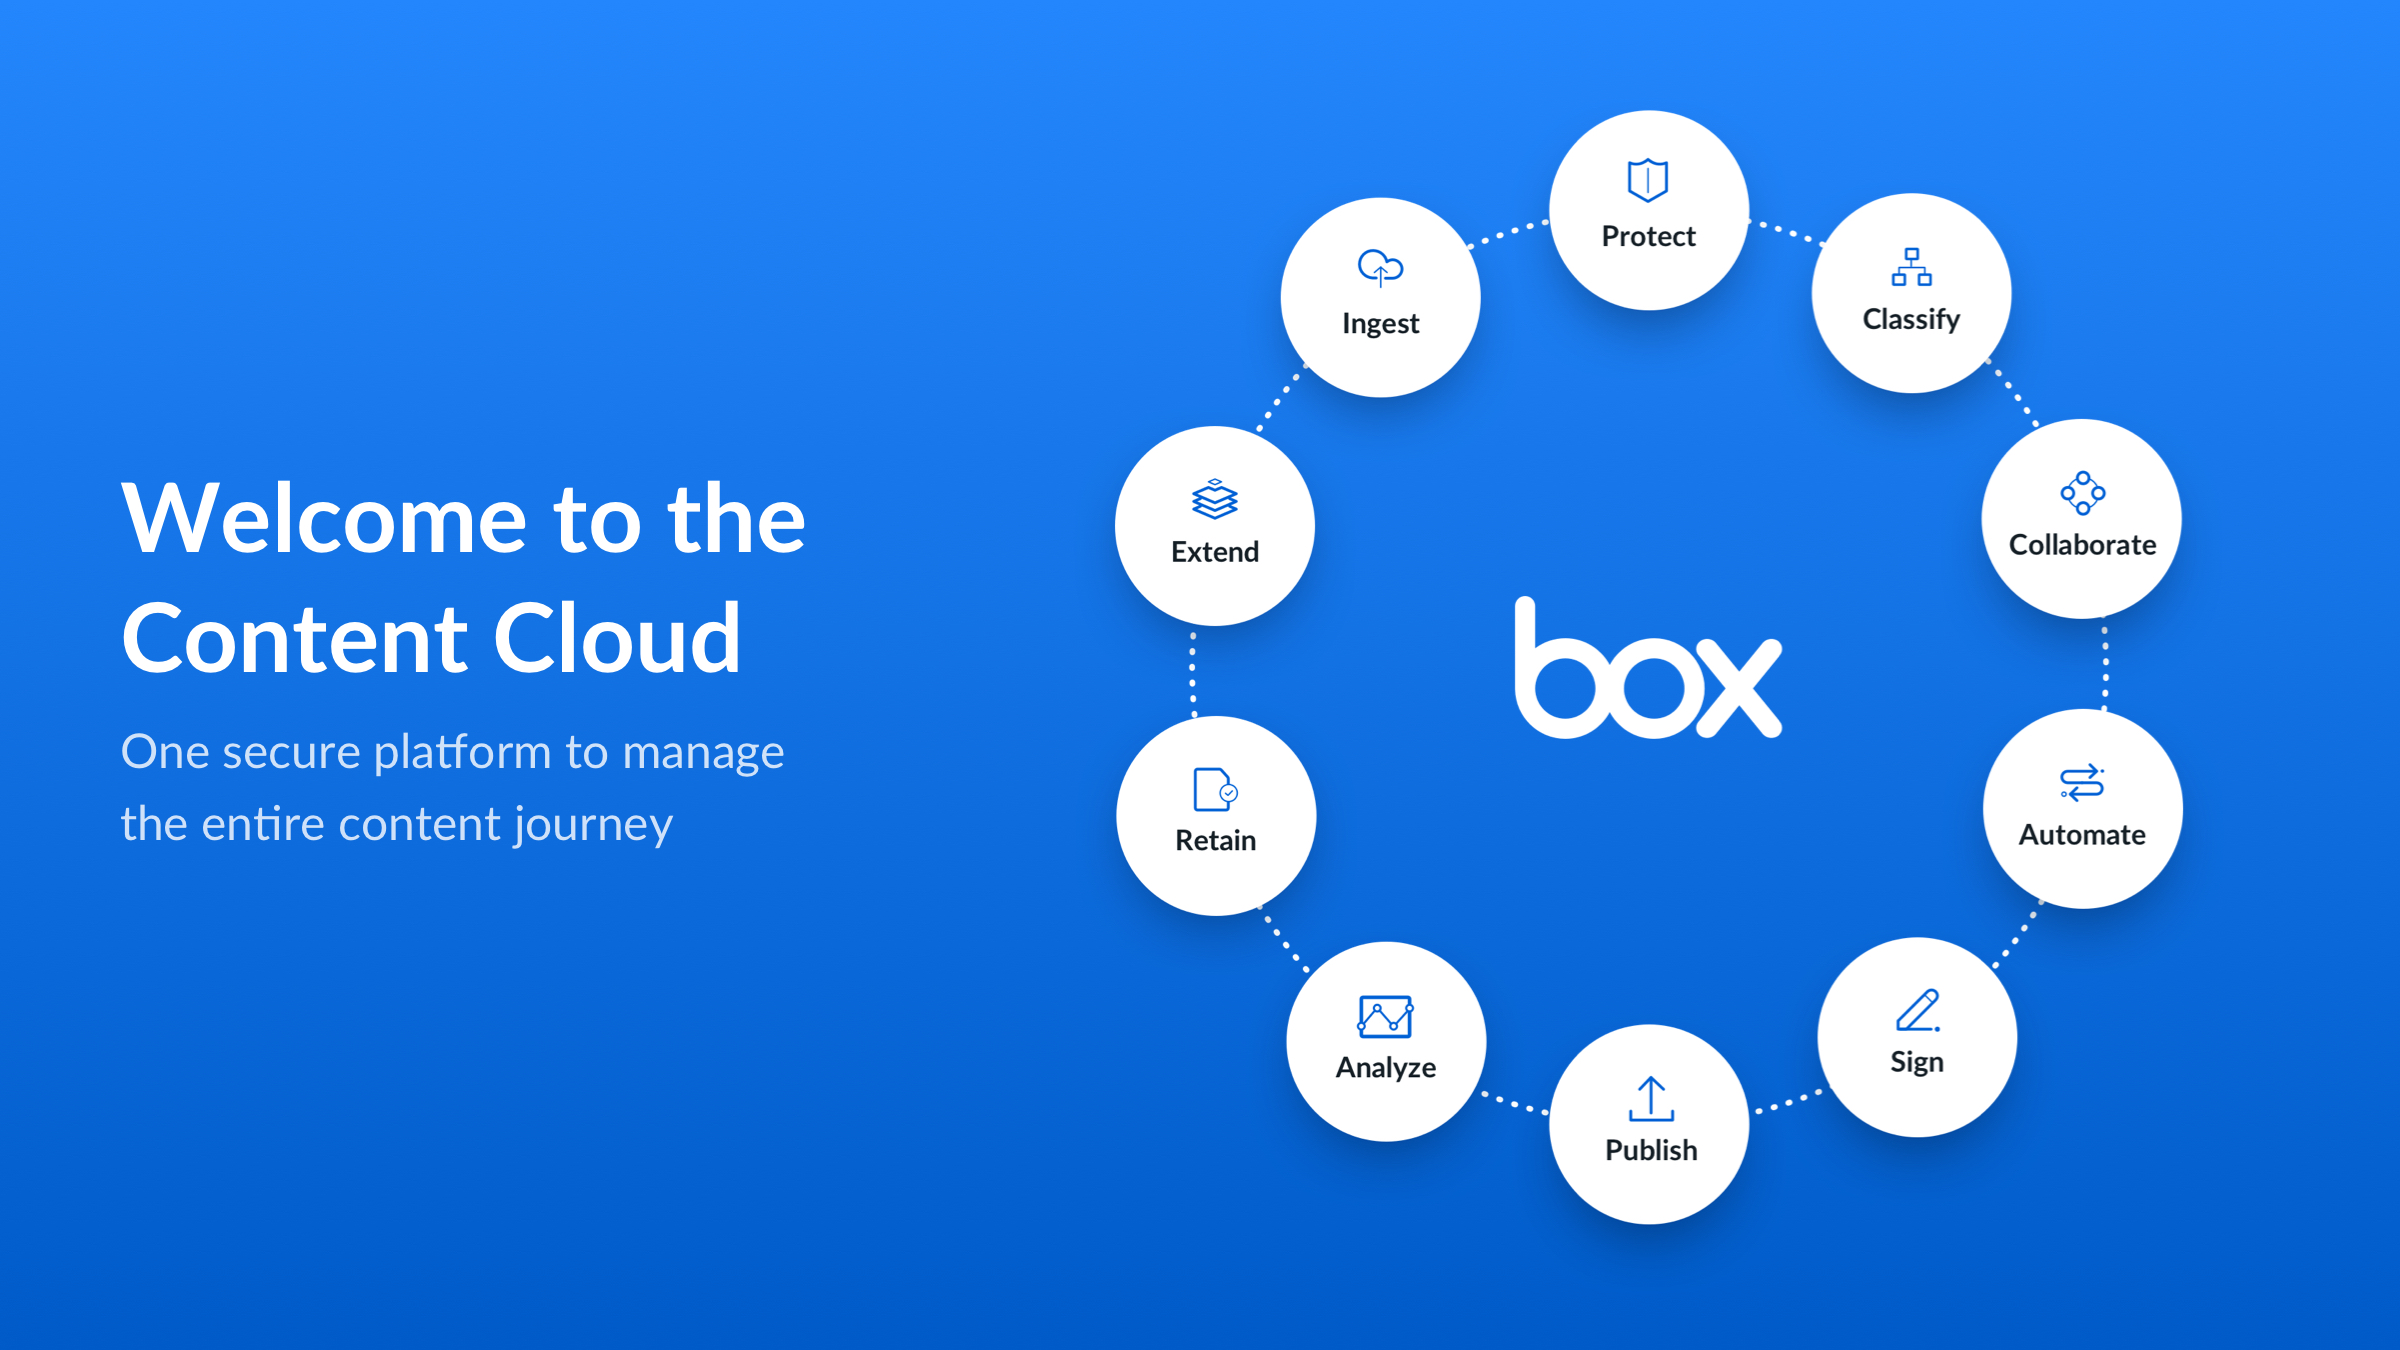 In the Content Cloud, you get a single, secure, easy-to-use platform built for the entire content lifecycle, from file creation and sharing, to editing, signature, and retention.